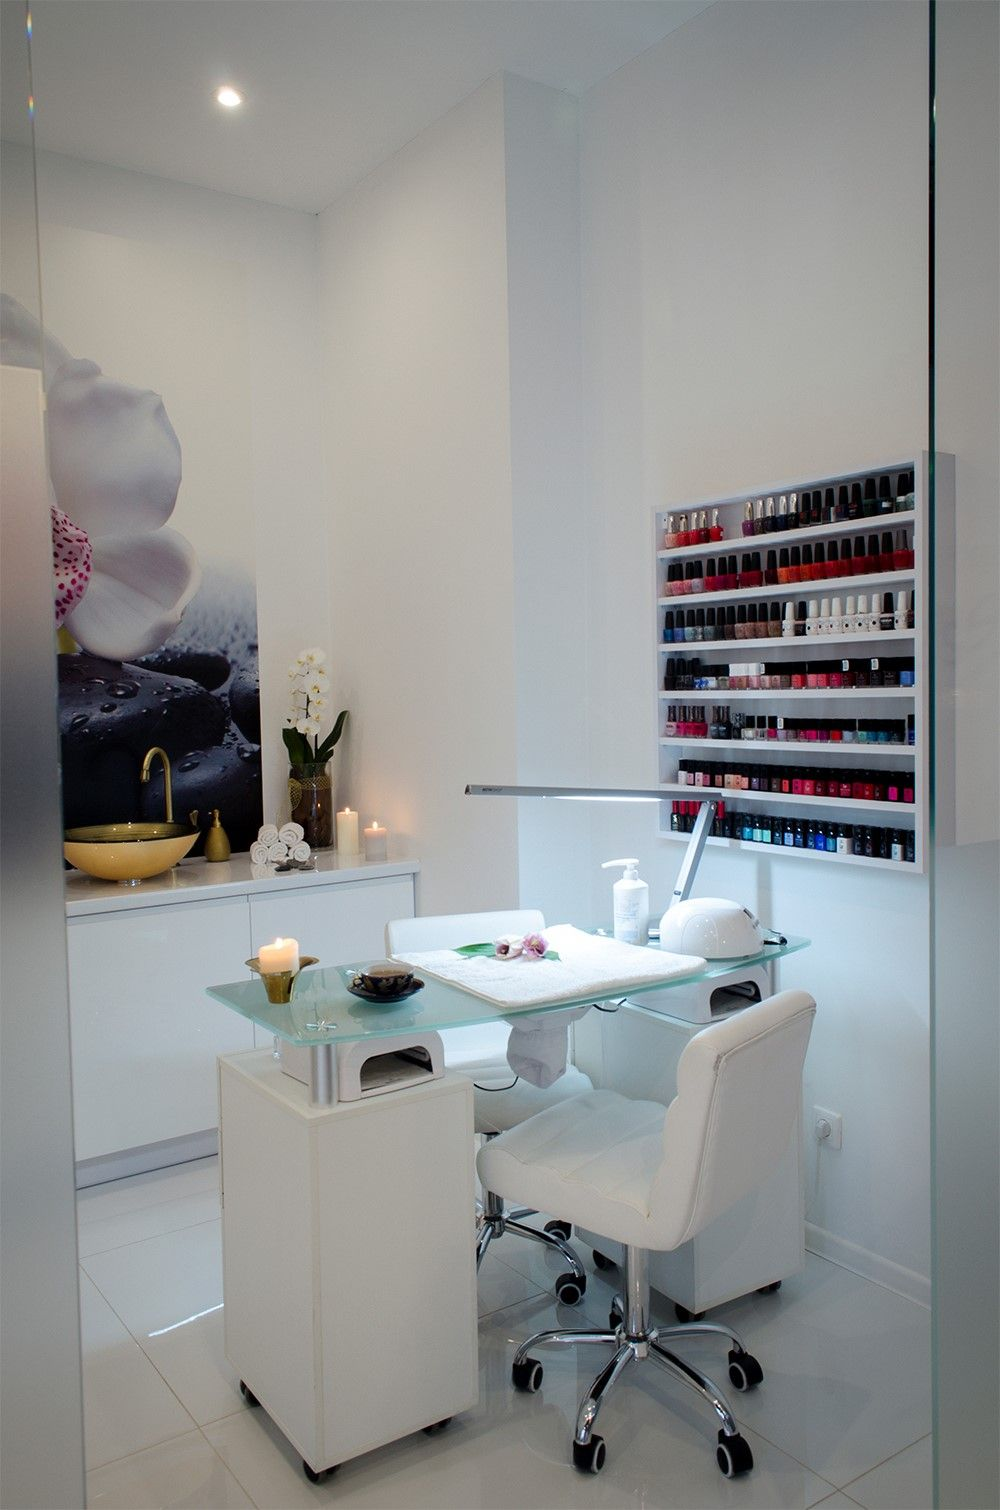 Salones De Estetica Decoracion Spa W Stylu Tajskim Estetica Decoracion Pinterest Salon De